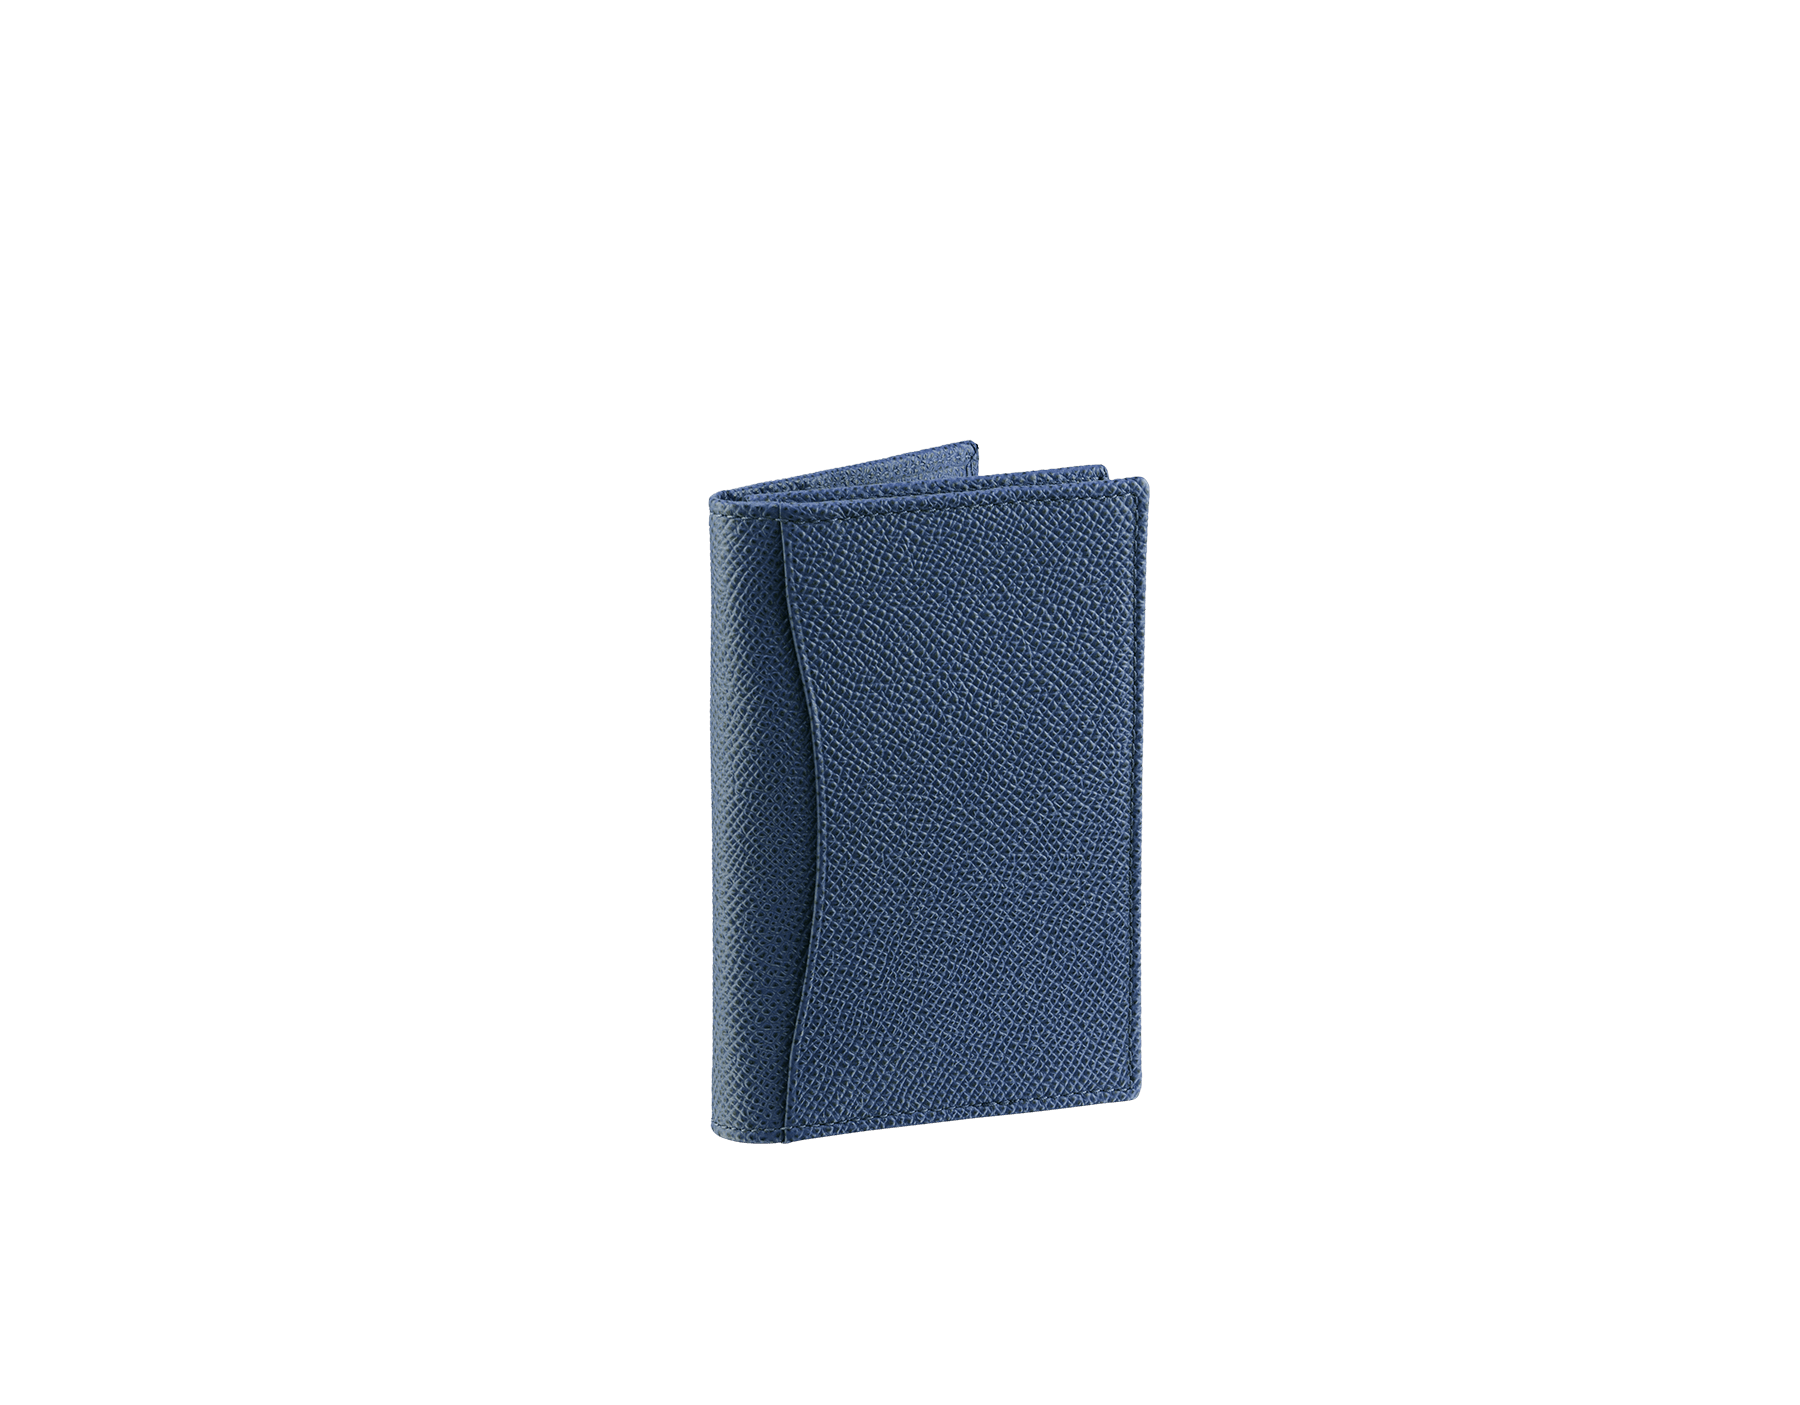 Business card holder in denim sapphire grain calf leather with brass palladium plated Bulgari Bulgari motif. Three credit card slots, one open pocket and business cards compartment. BBM-BC-HOLD-SIMPLEa image 3